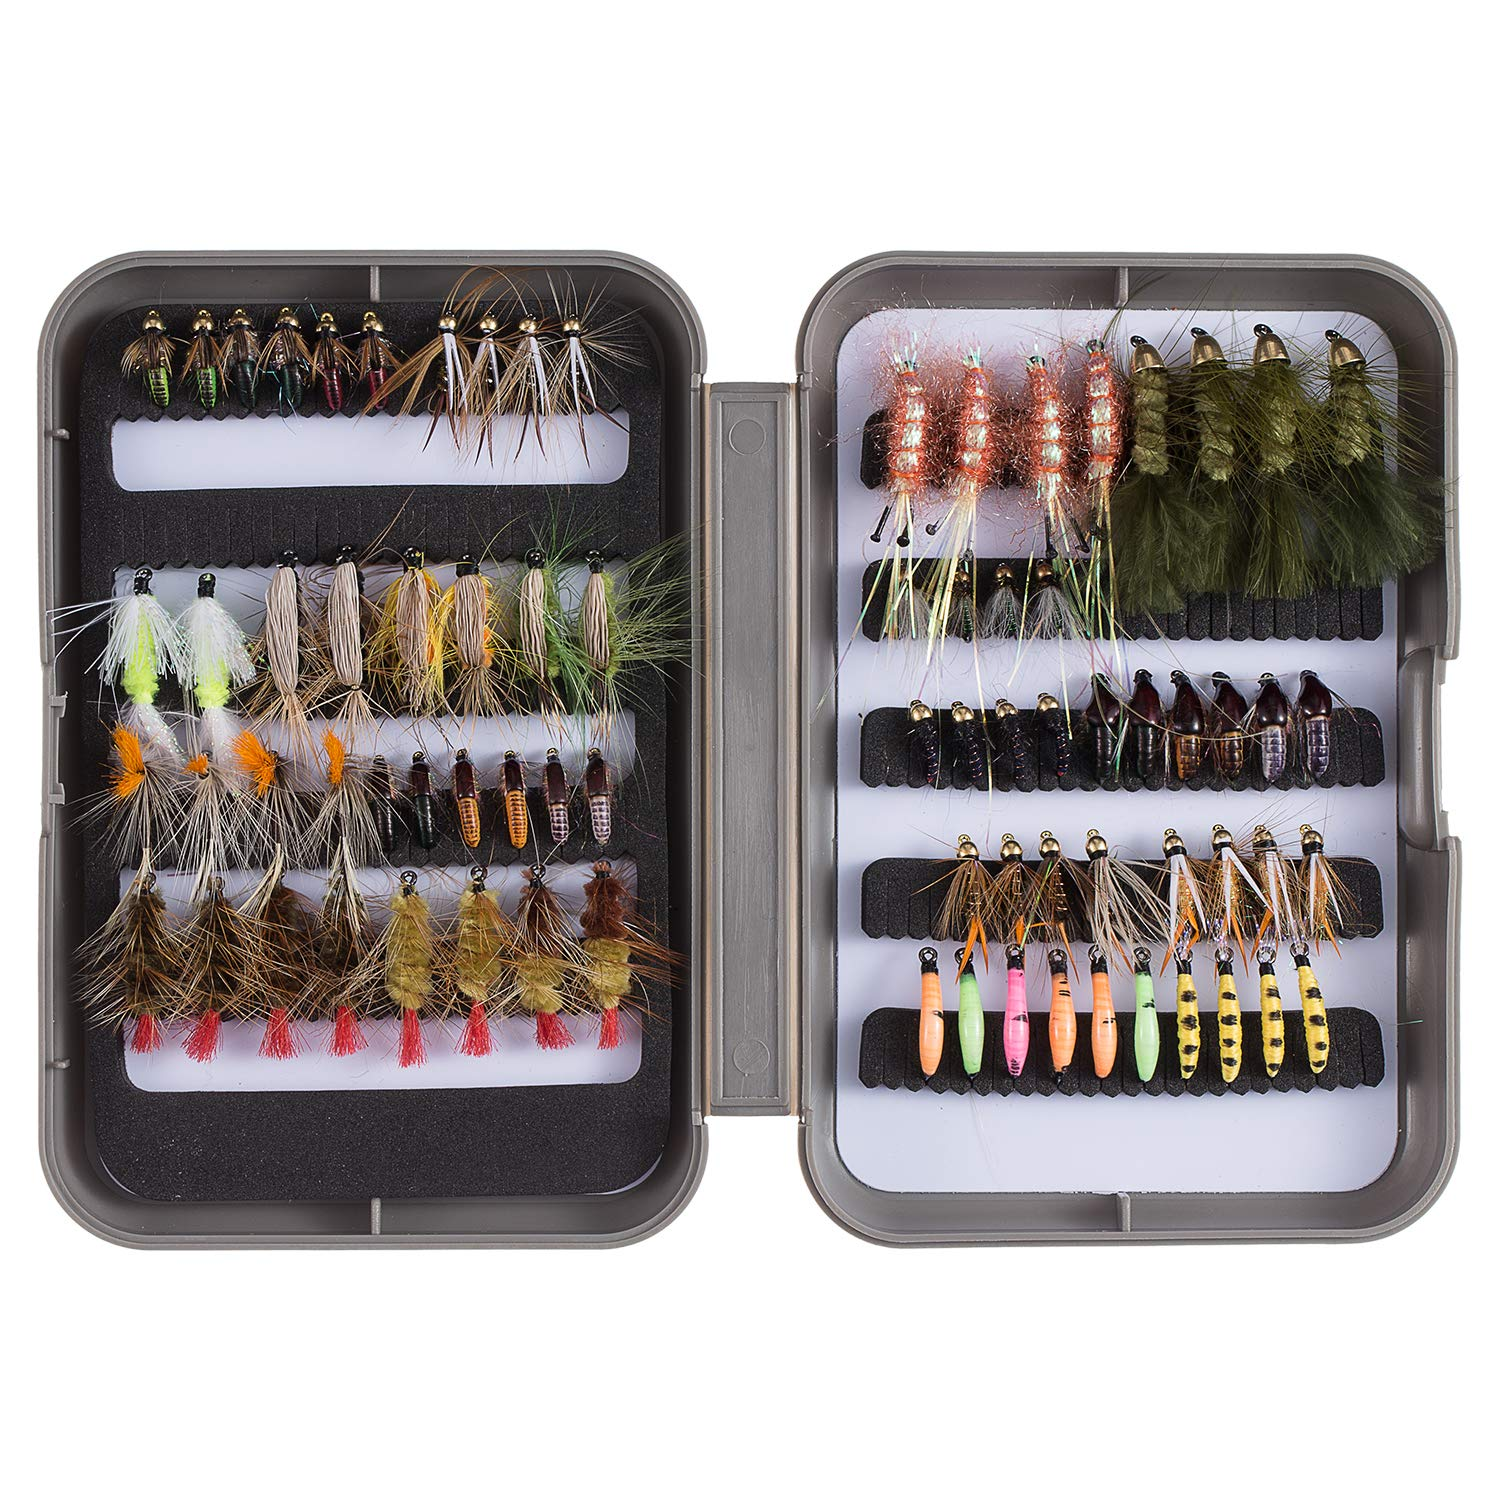 Bassdash Fly Fishing Flies Kit Fly Assortment Trout Fishing with Fly Box, 36/64/72/80/96pcs with Dry/Wet Flies, Nymphs, Streamers, Popper (76 pcs Assorted Flies kit with Fly Box) by Bassdash